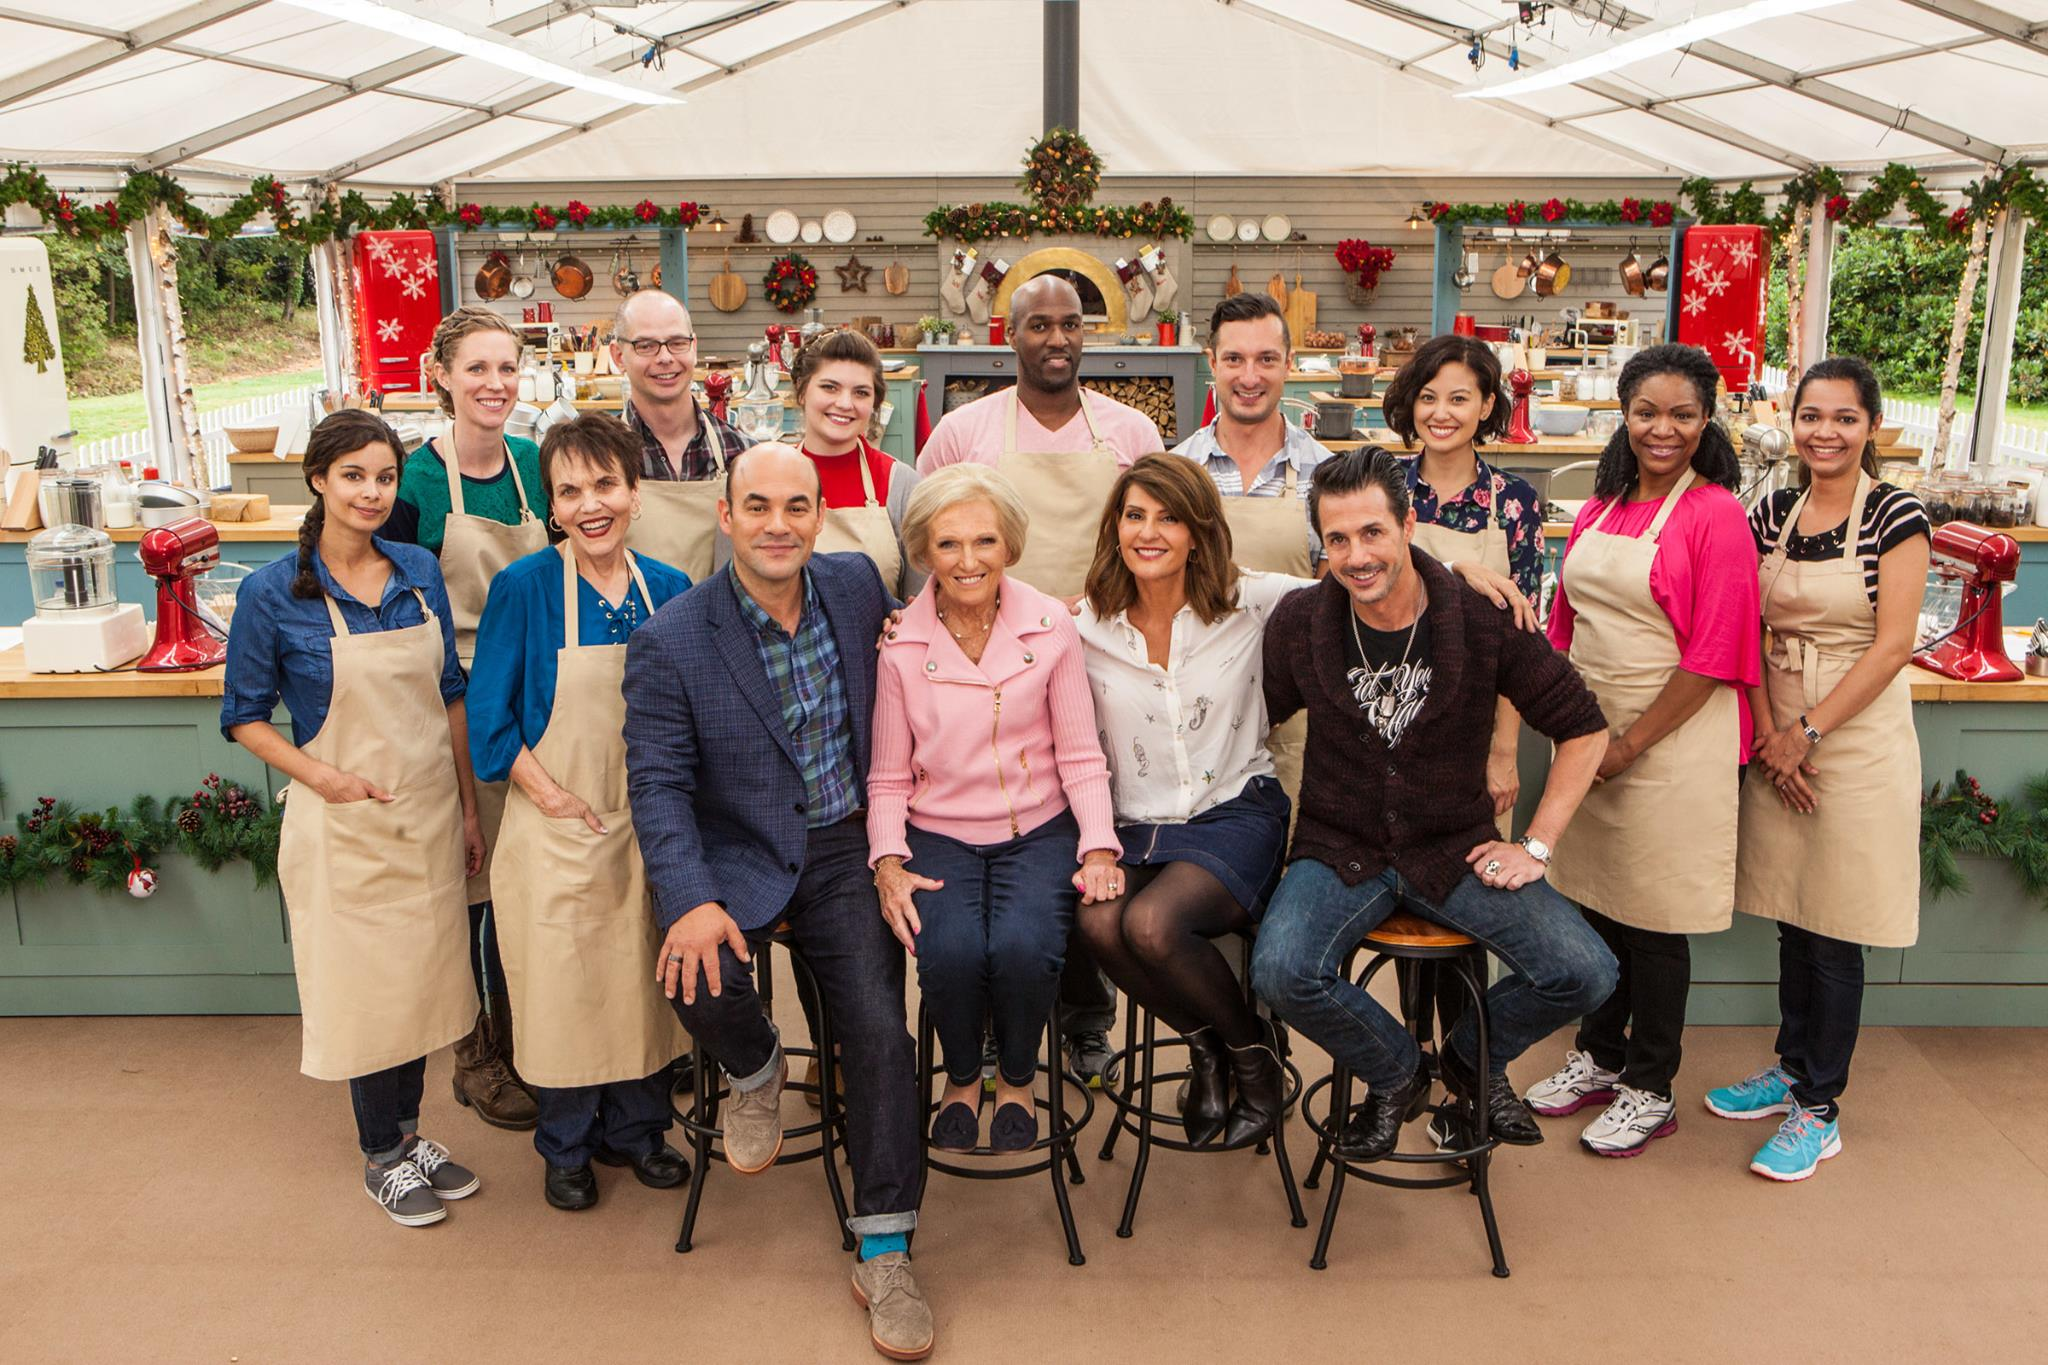 Cake Tv Show America : Great American Baking Show: ABC TV show - ratings (cancel ...